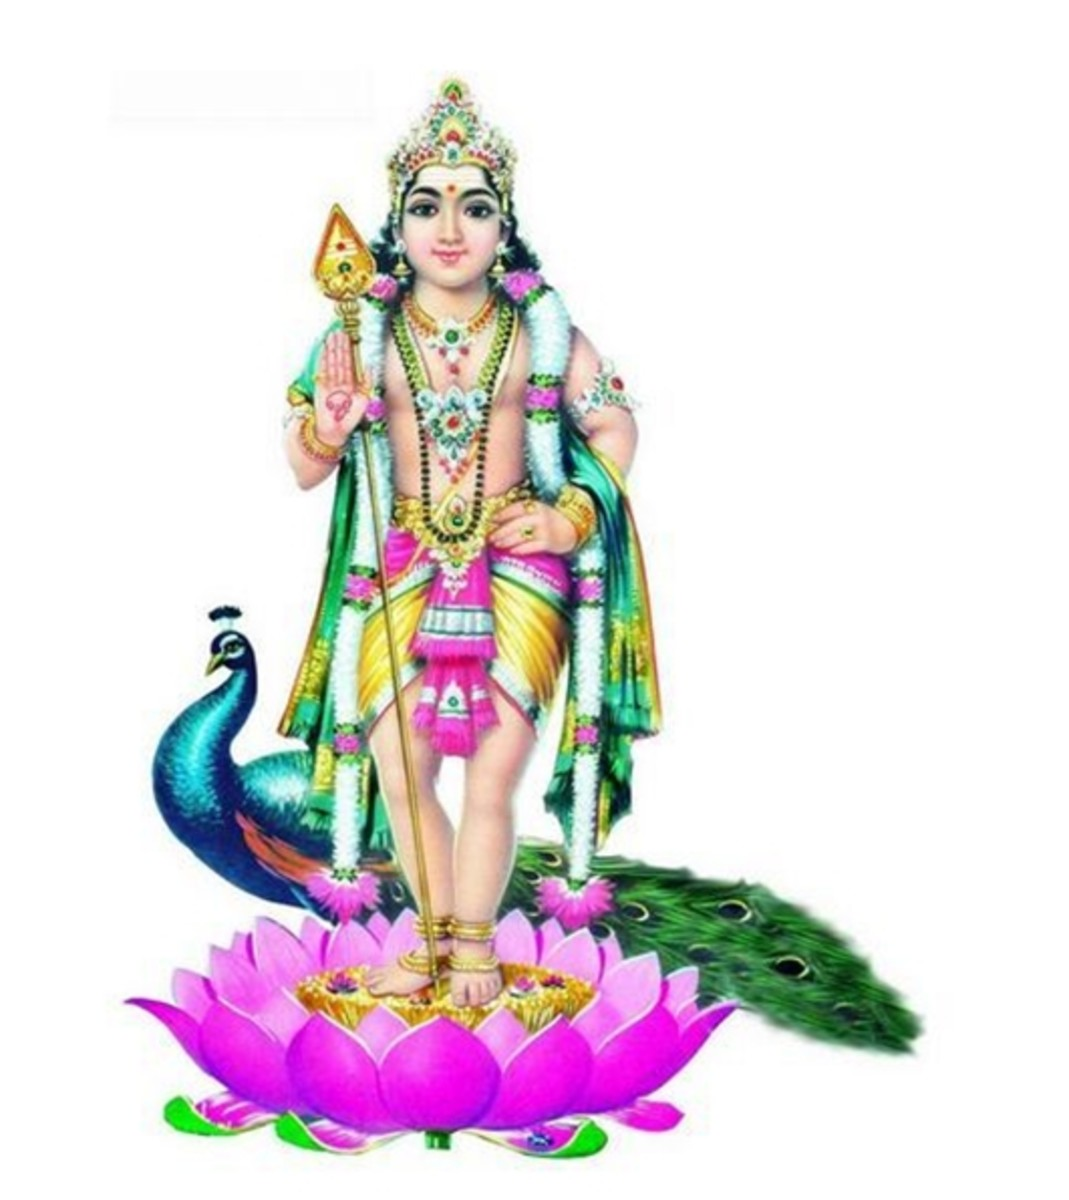 Mantras of Murugan (Lord Kartikeya)